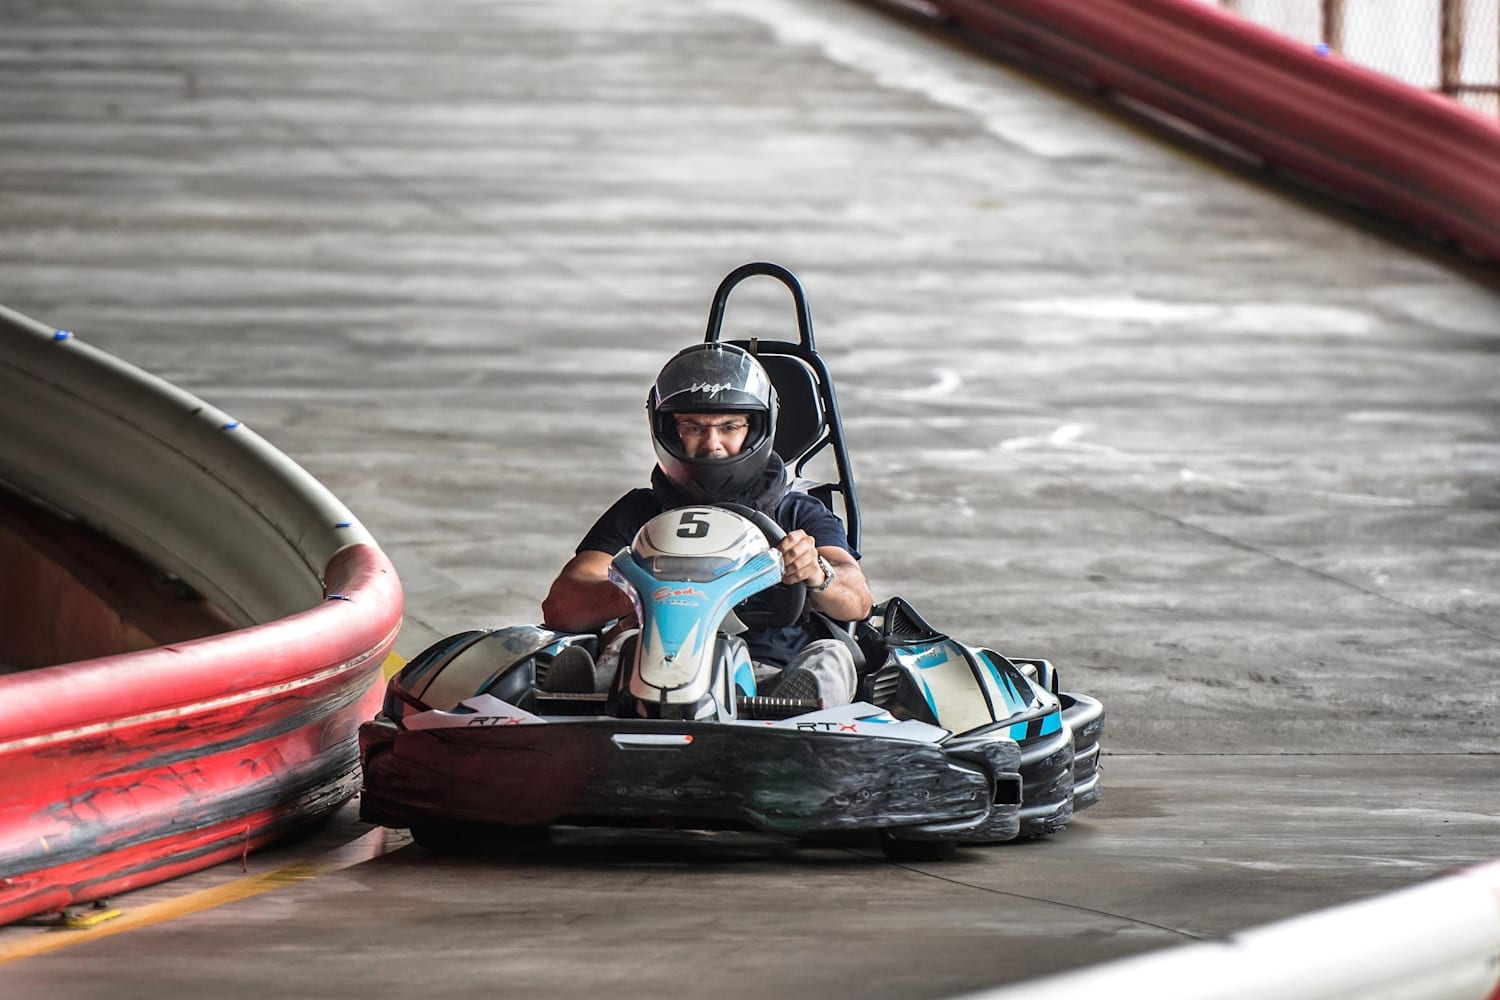 Differences between gas and electric karting